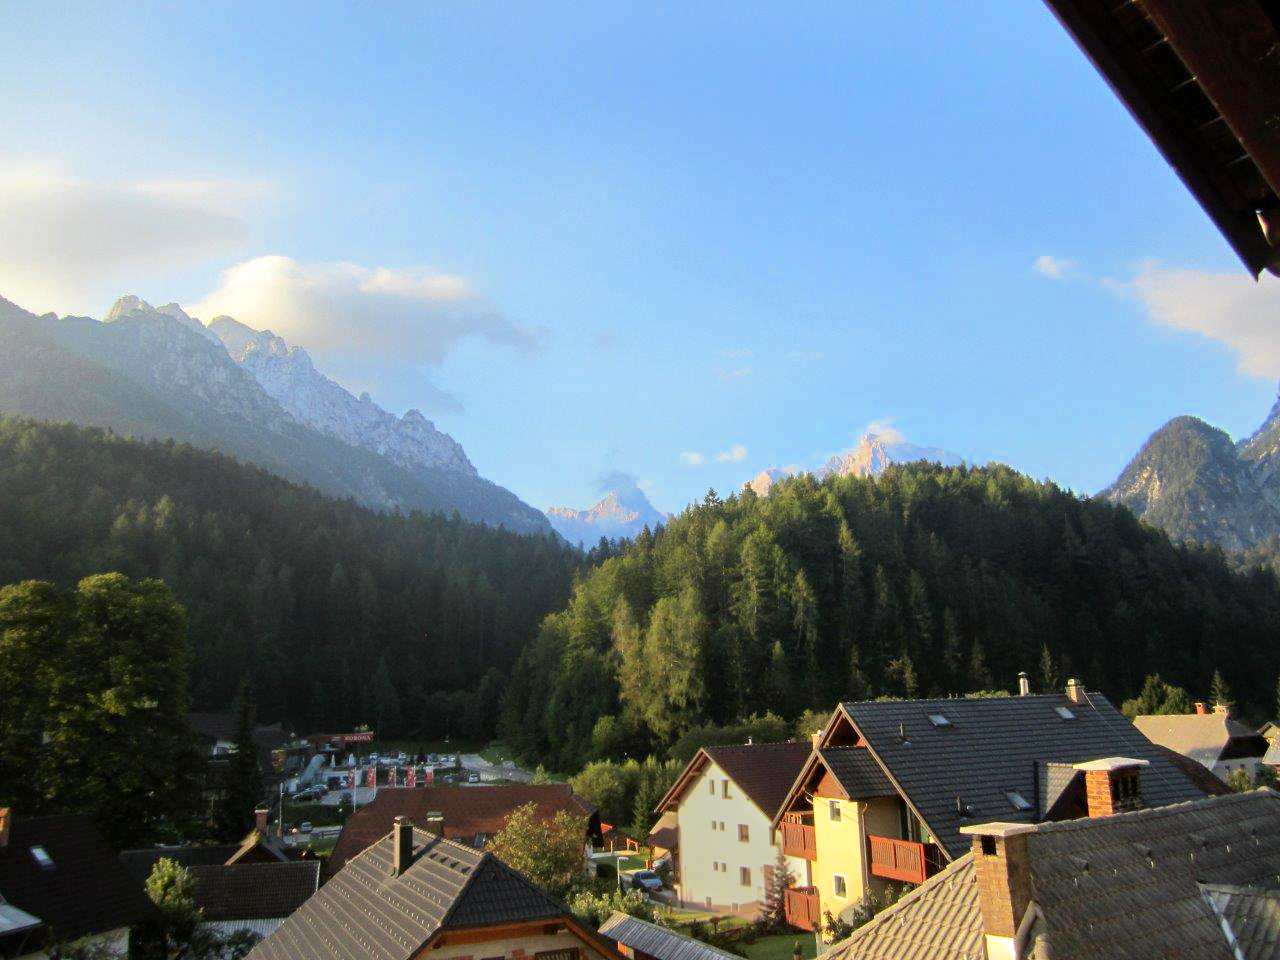 View from our hotel in Kranjska Gora